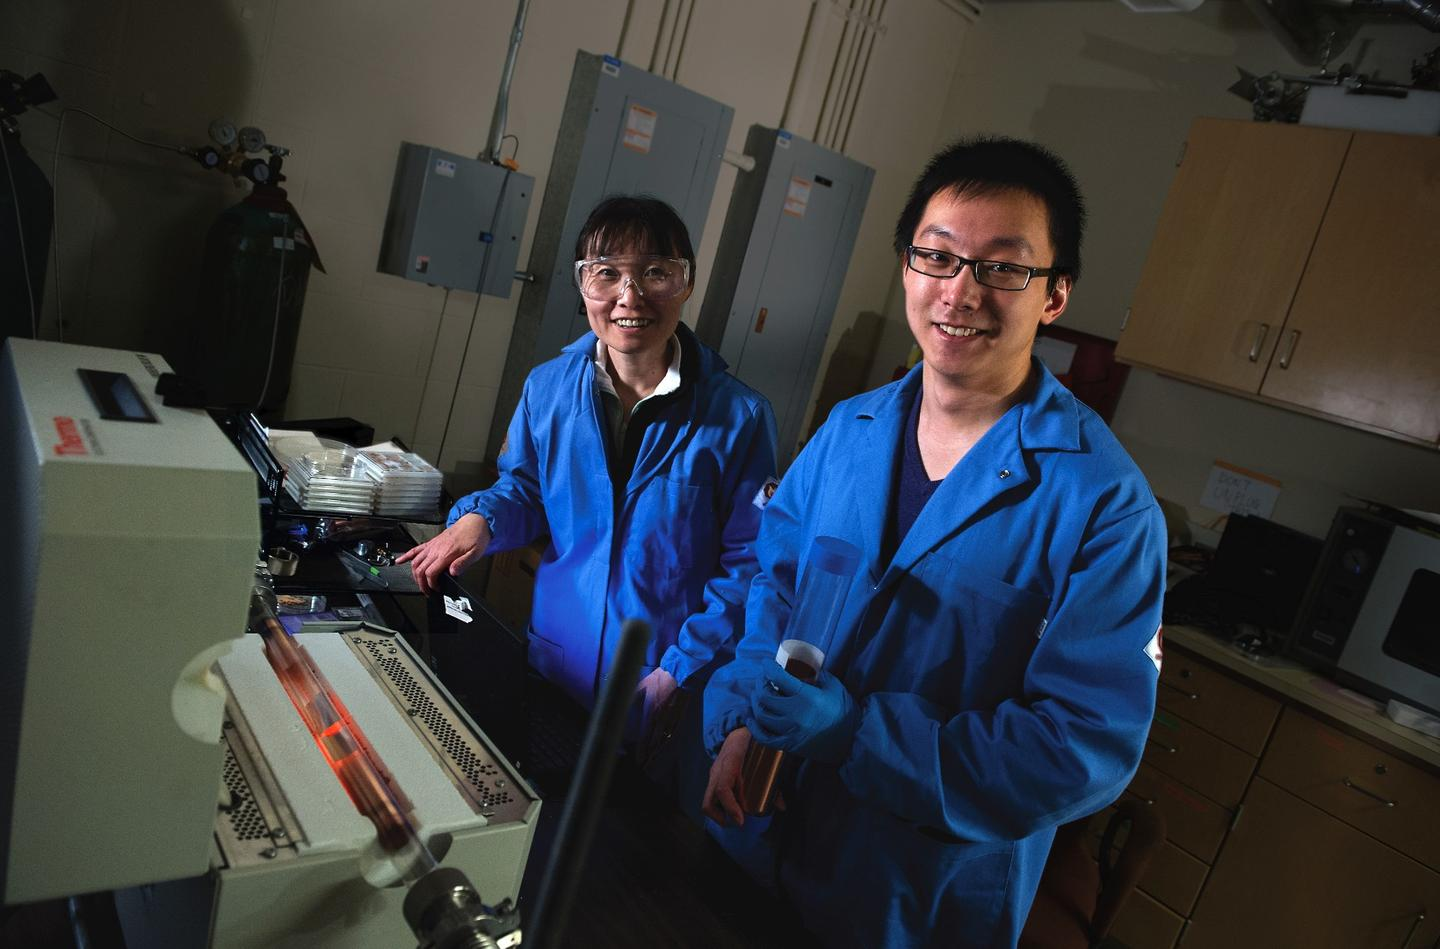 Two of the MIT researchers on the project, Jing Kong (left) and Yi Song (right)